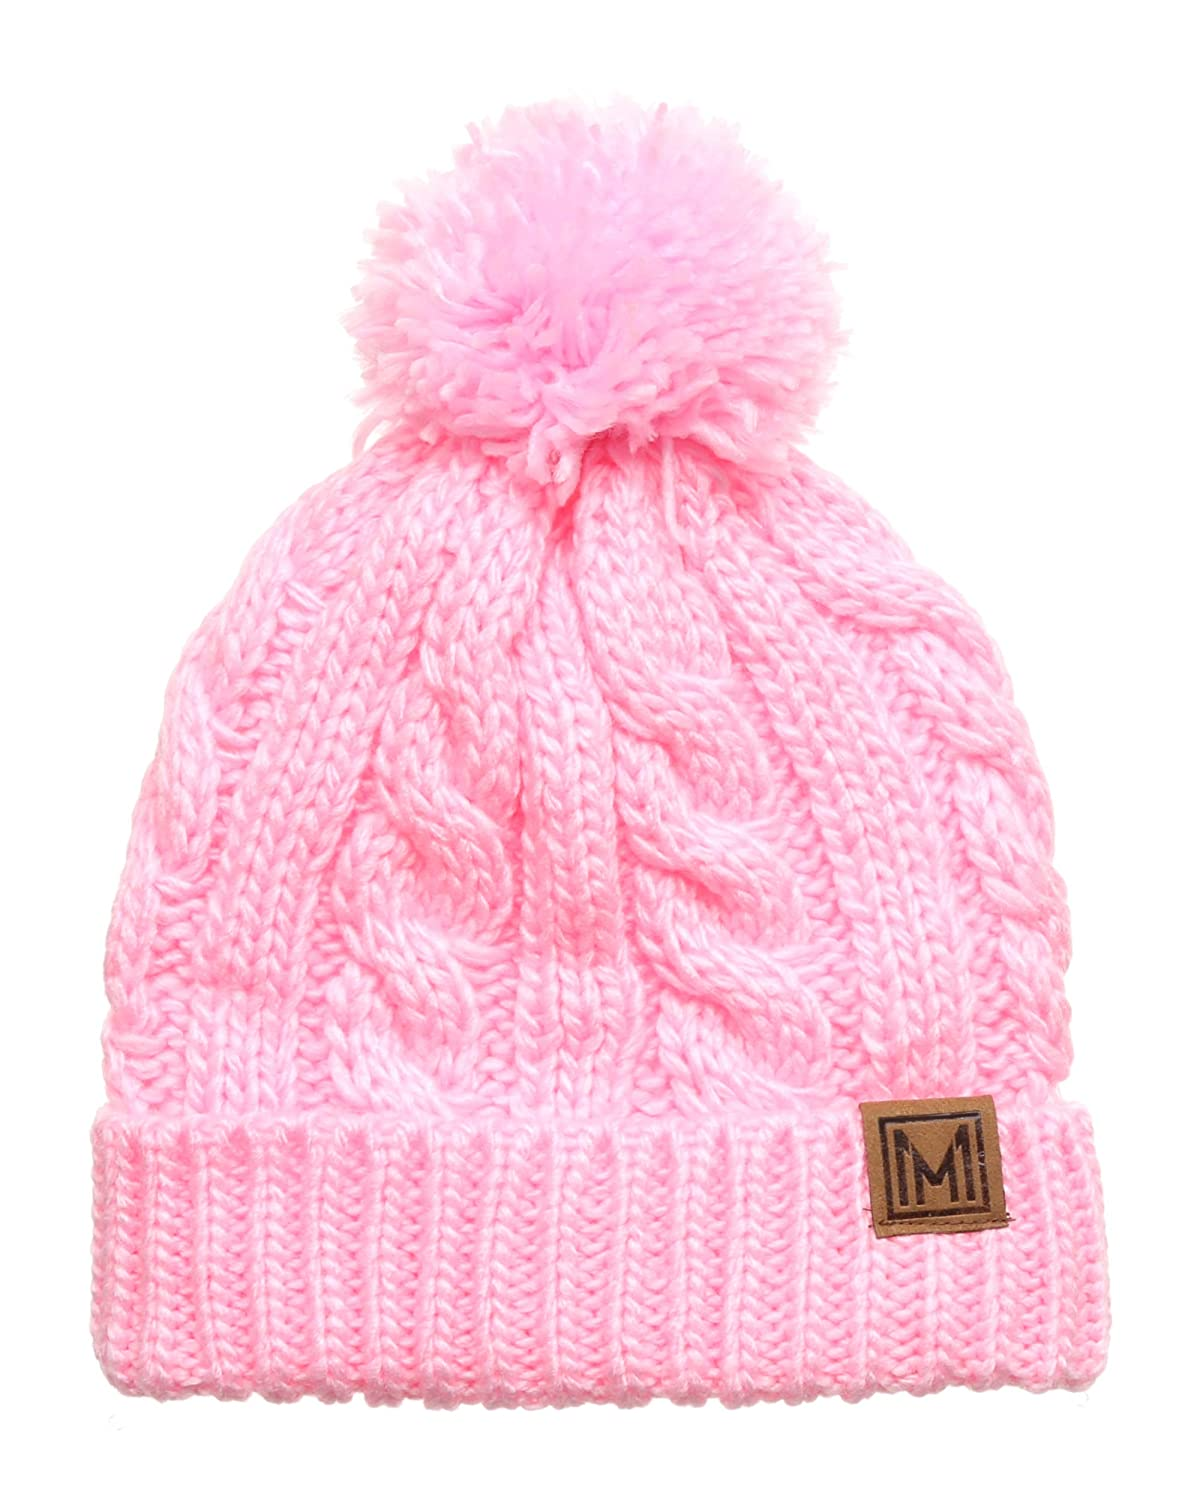 e9aaa890ab7 MIRMARU Winter Oversized Cable Knitted Pom Pom Beanie Hat with Fleece  Lining. (Light Pink) at Amazon Women s Clothing store